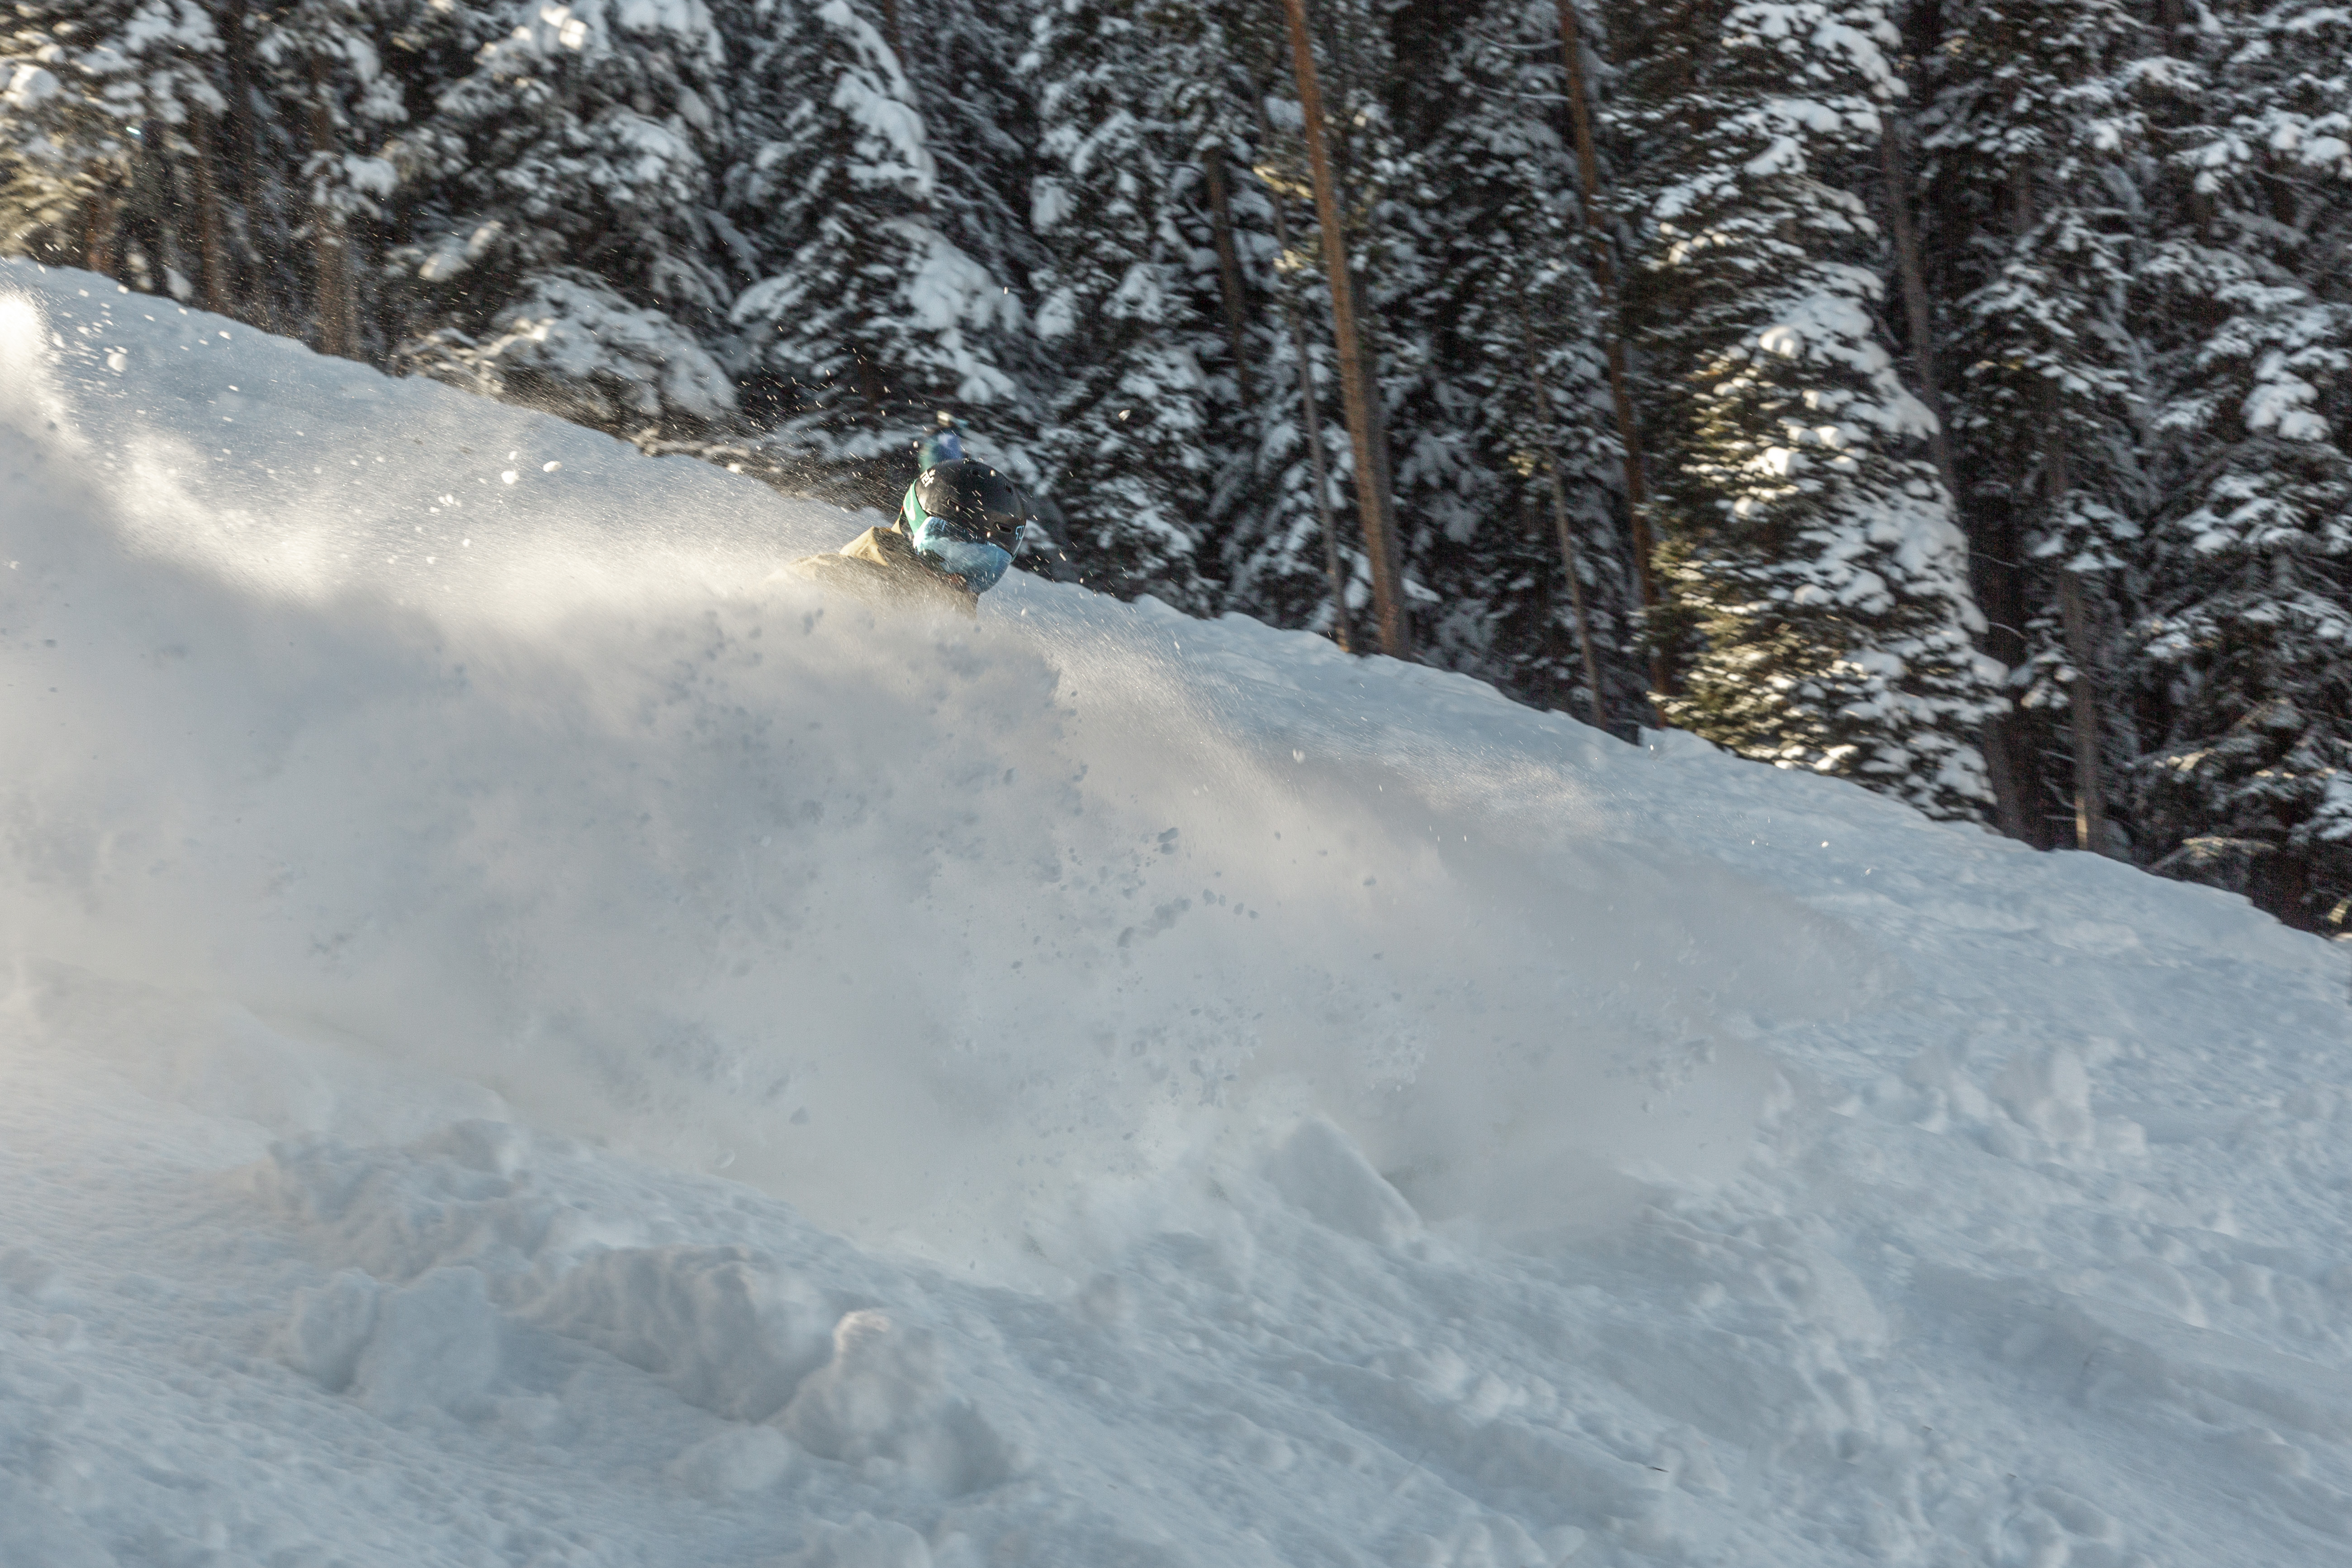 Great snow in Vail with more on the way, and it's not too late to get an Epic Pass